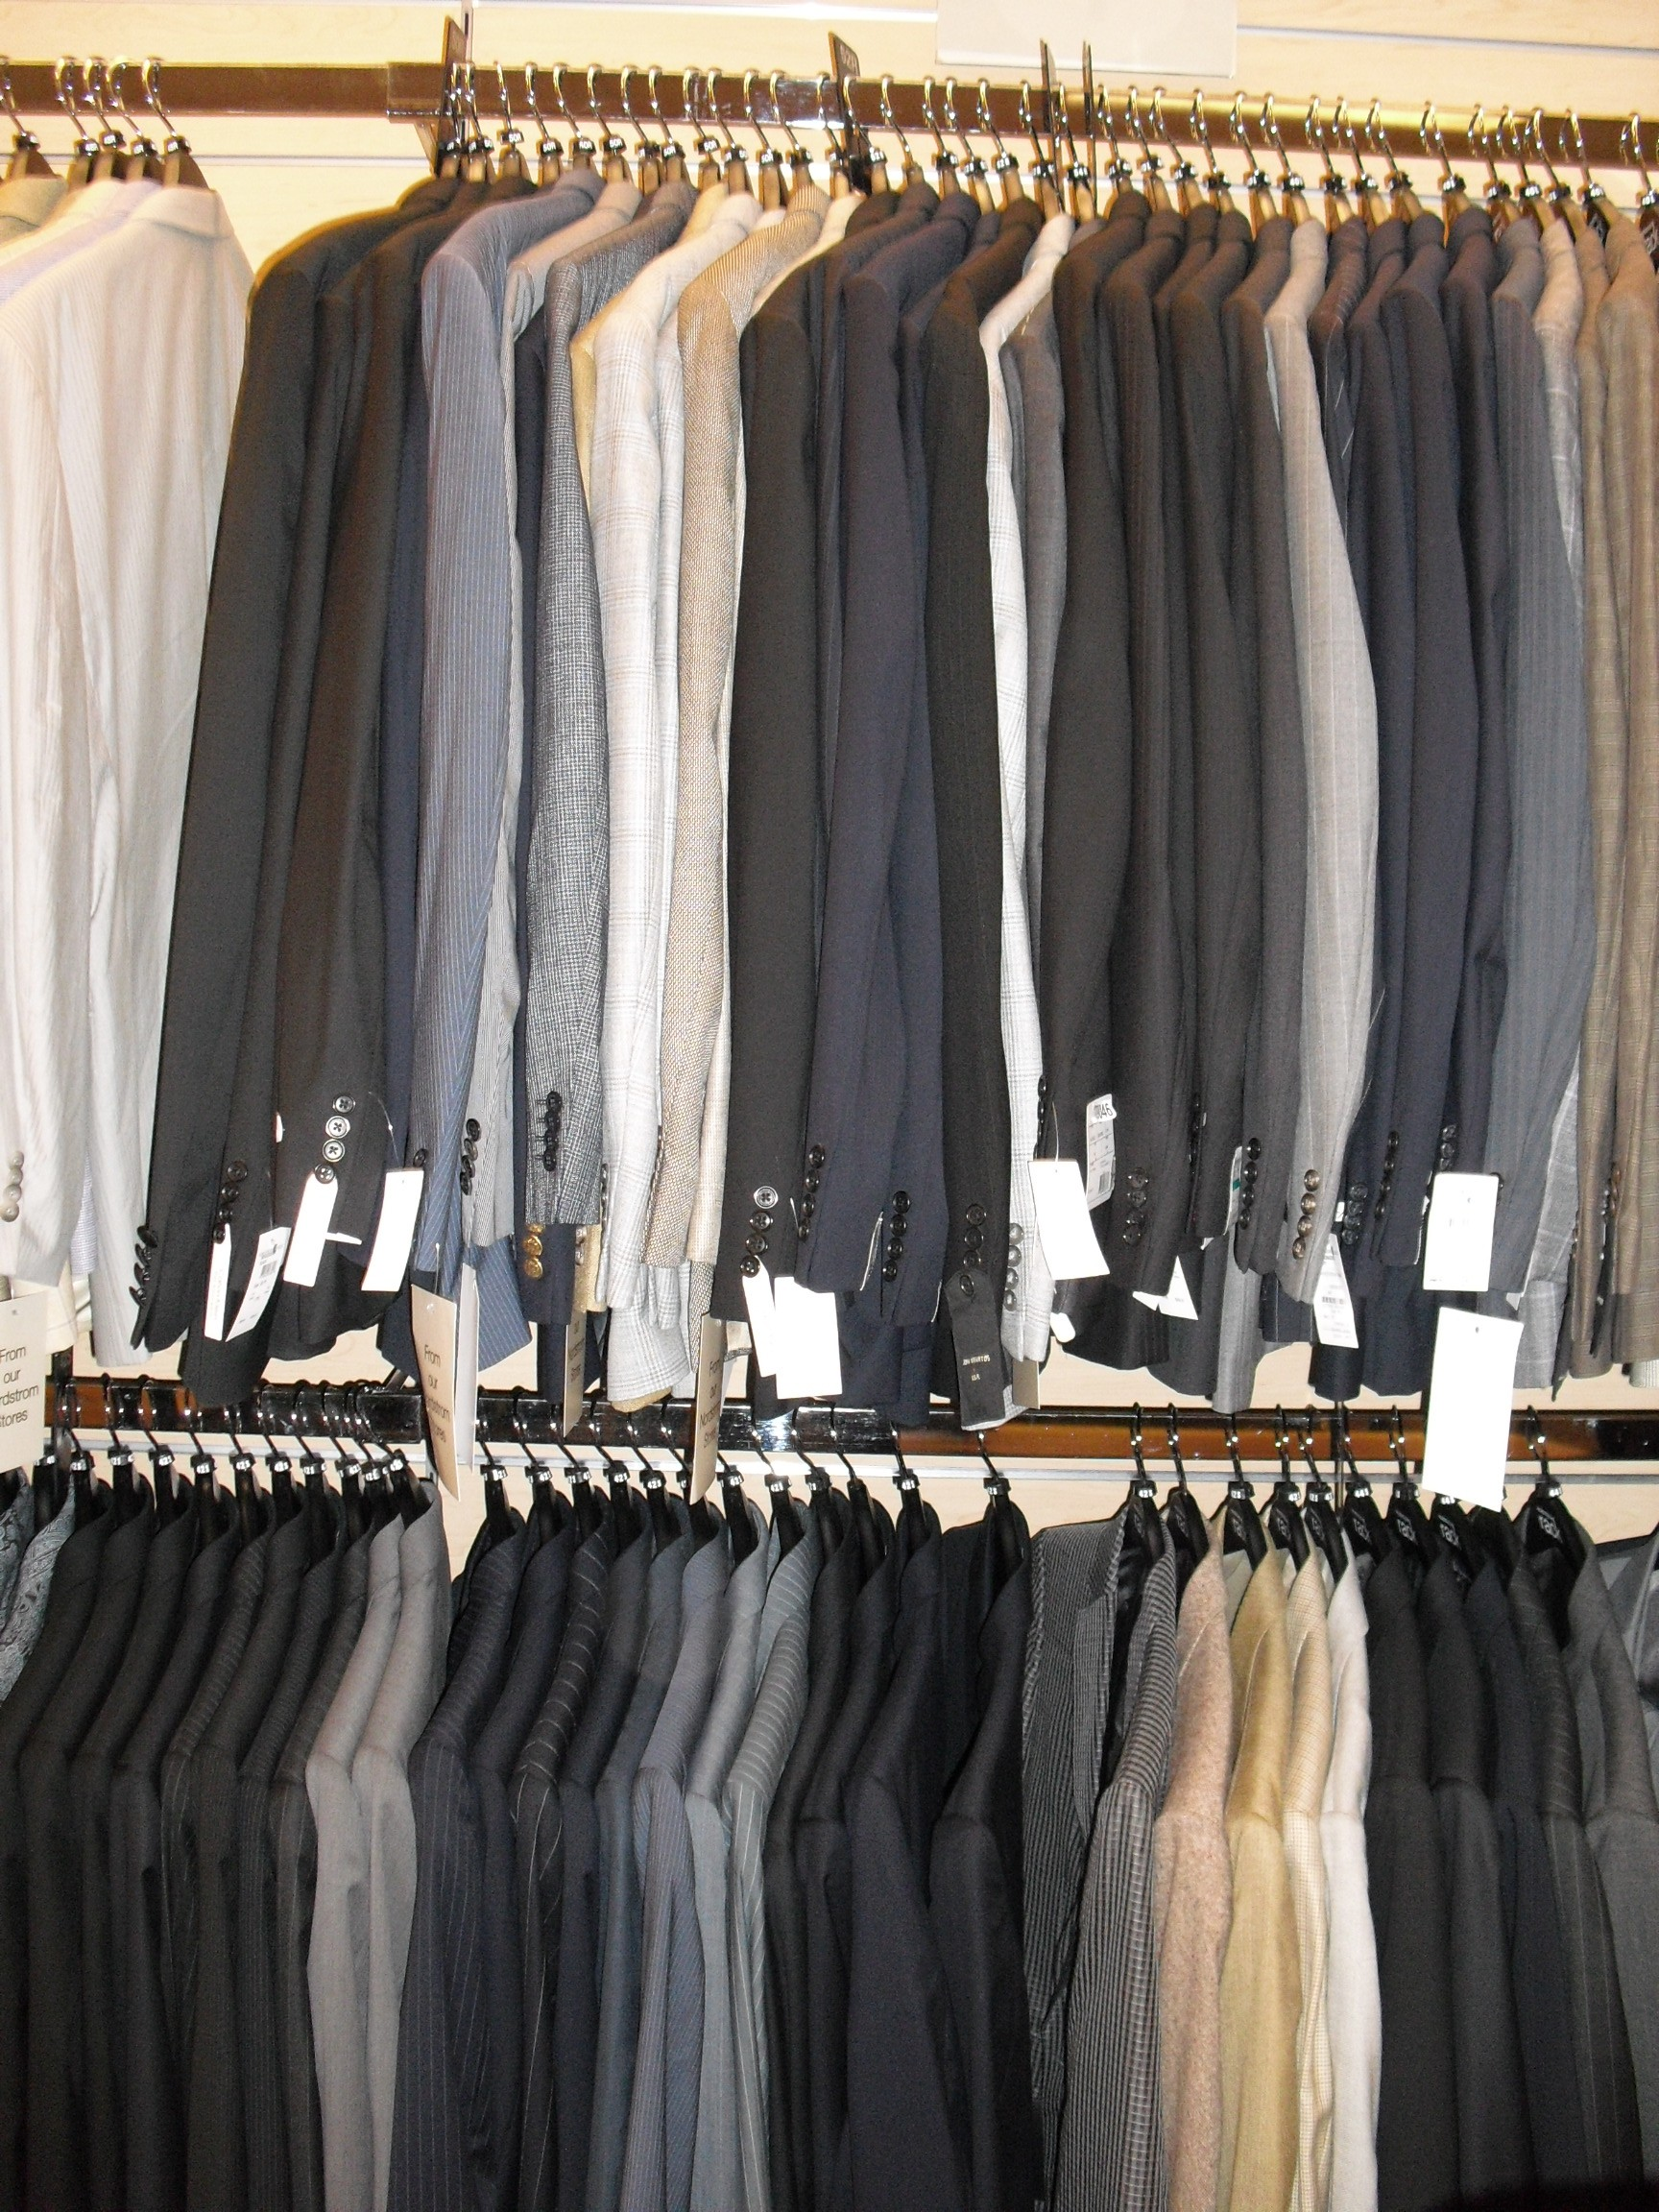 Suits at Nordstrom Rack